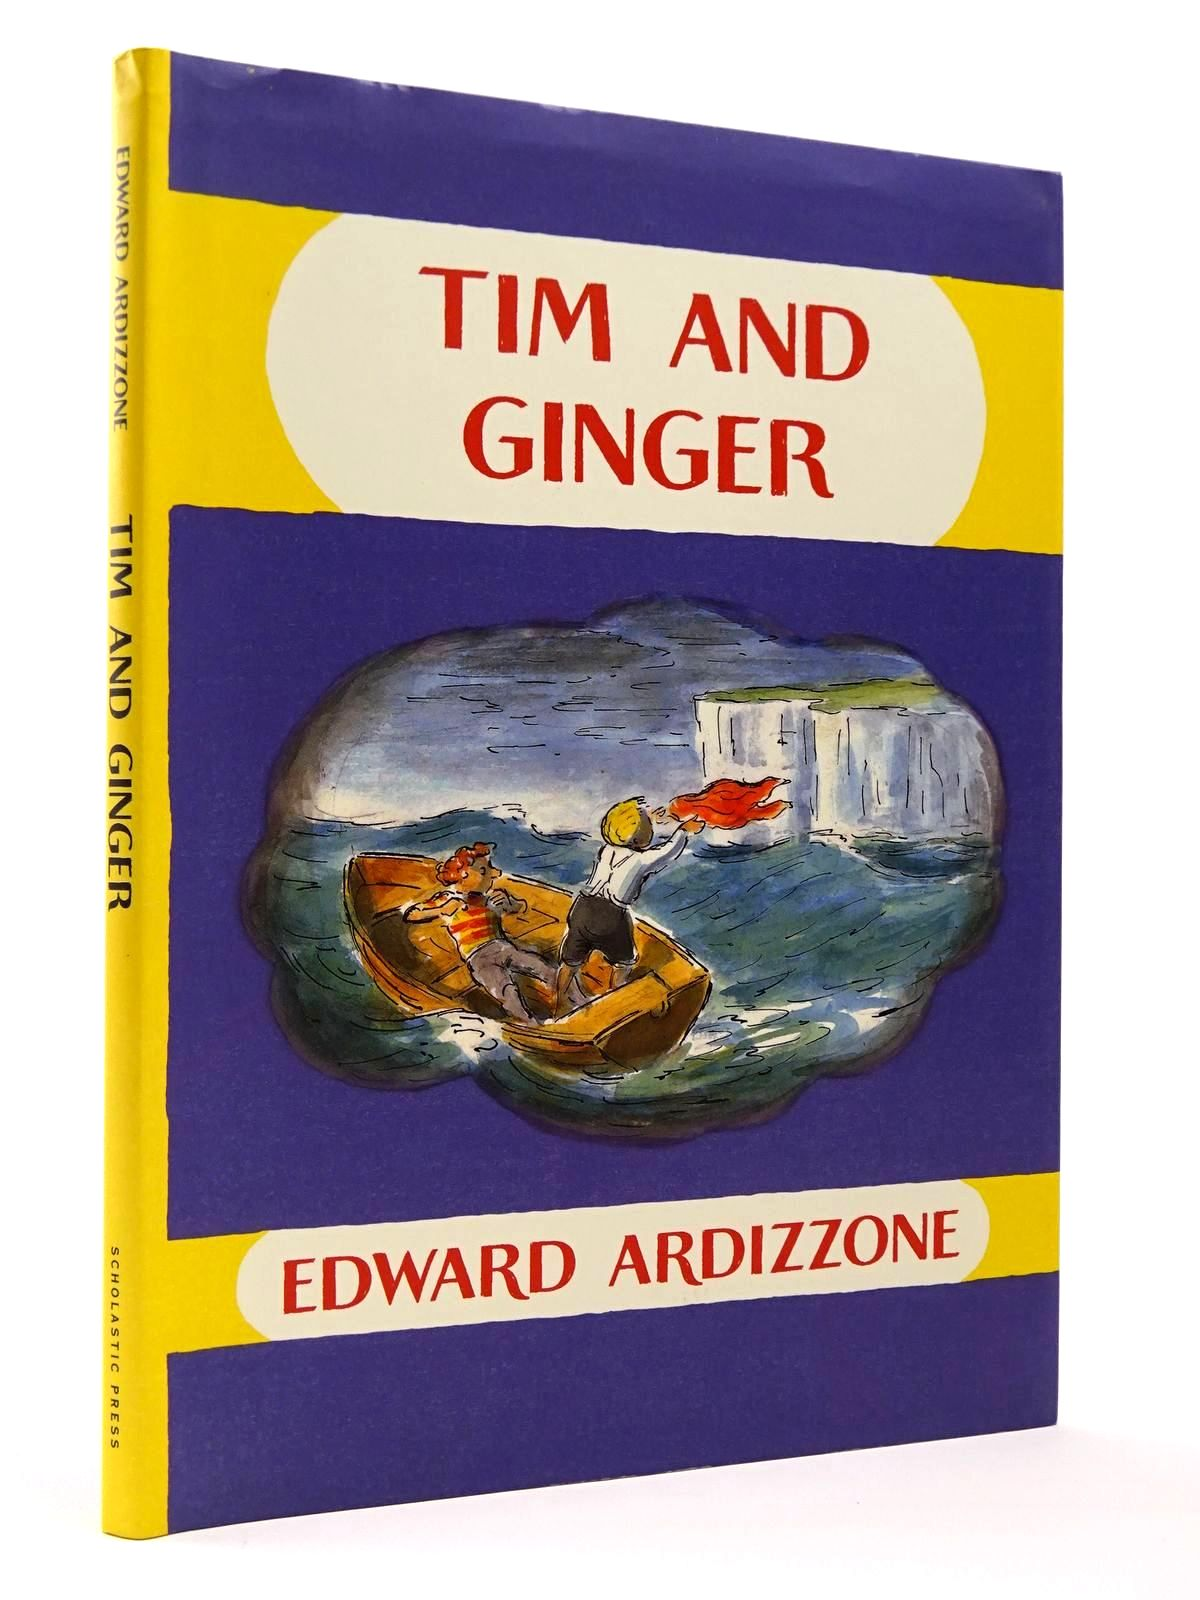 Photo of TIM AND GINGER written by Ardizzone, Edward illustrated by Ardizzone, Edward published by Scholastic Press (STOCK CODE: 2129443)  for sale by Stella & Rose's Books